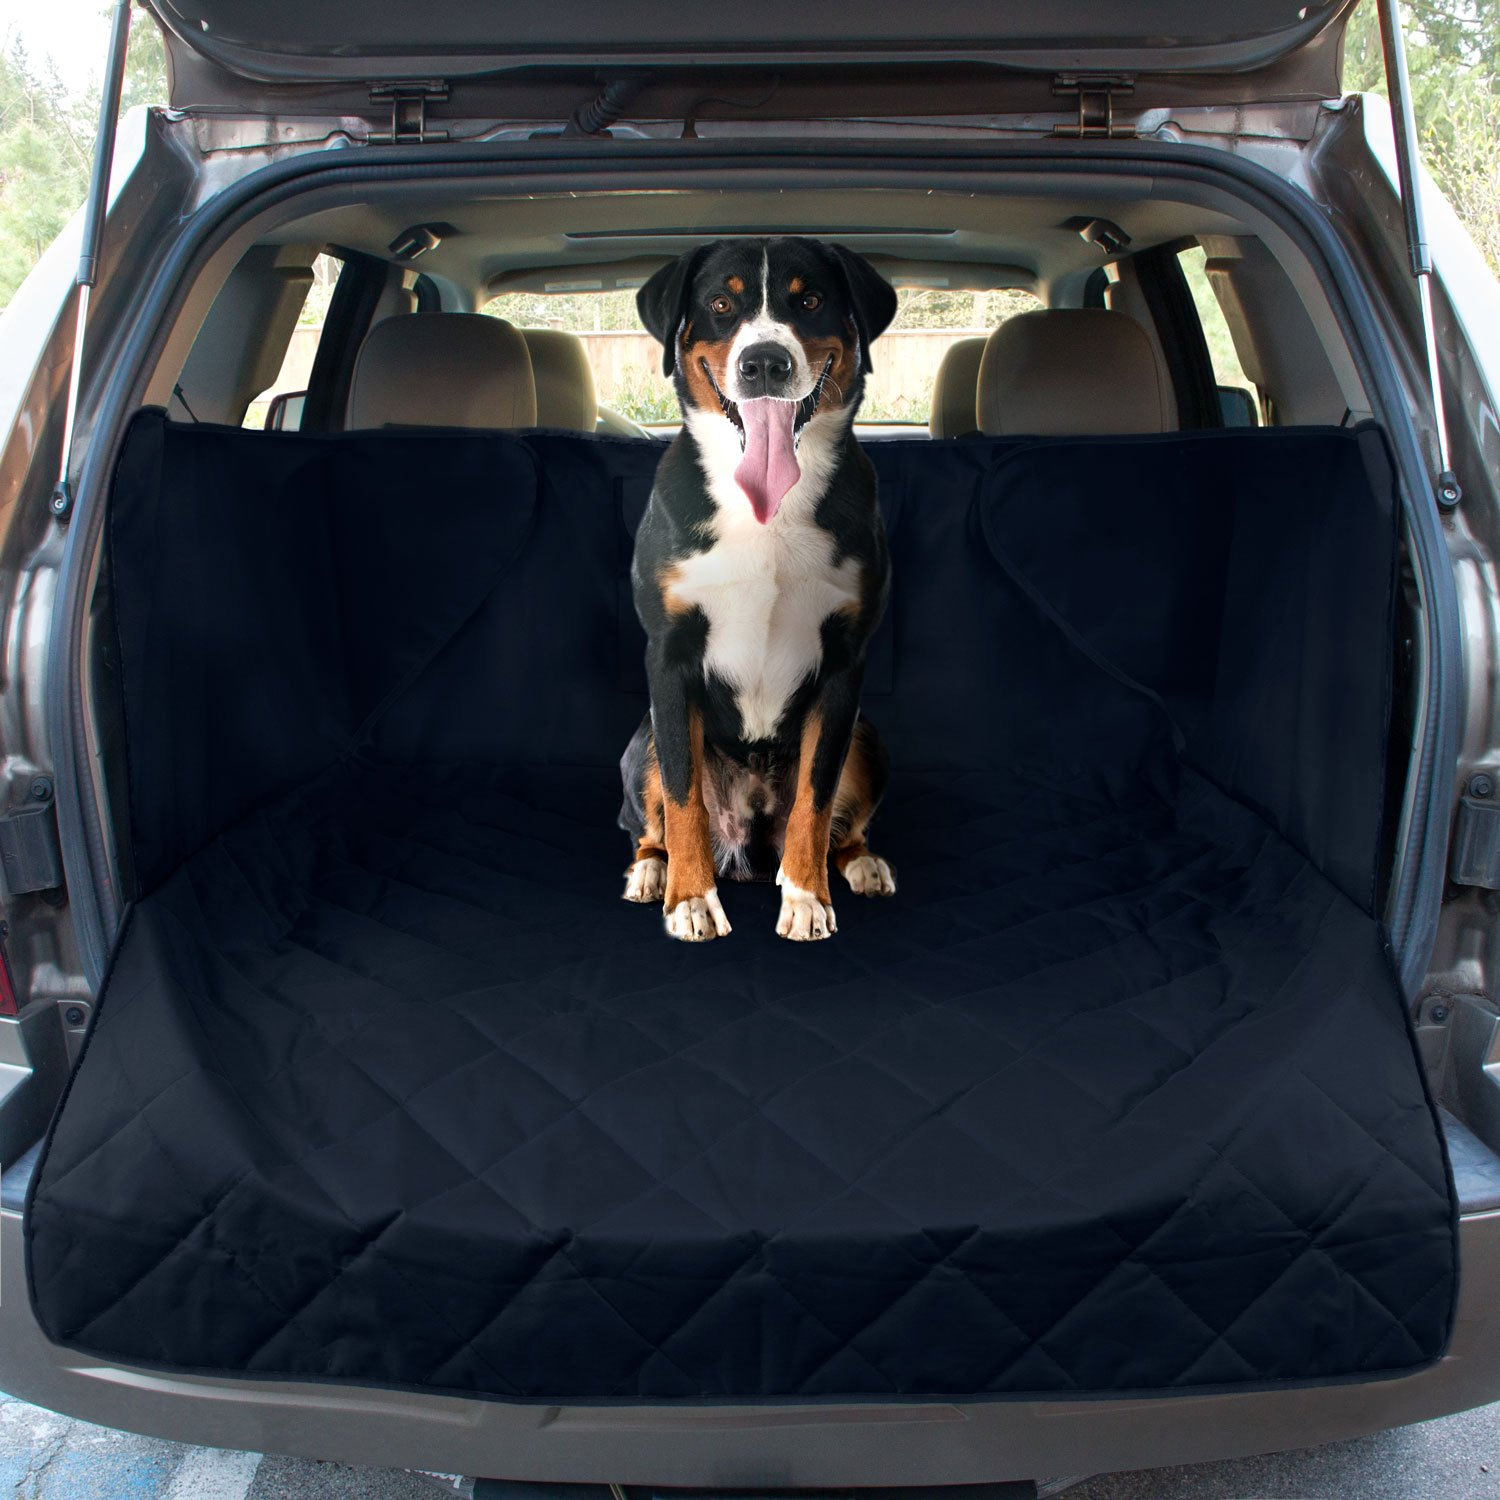 FrontPet Extended Width Quilted Dog Cargo Cover for SUV Universal Fit for Any Animal. Durable Liner Covers and Protects Your Vehicle by FrontPet (Image #3)